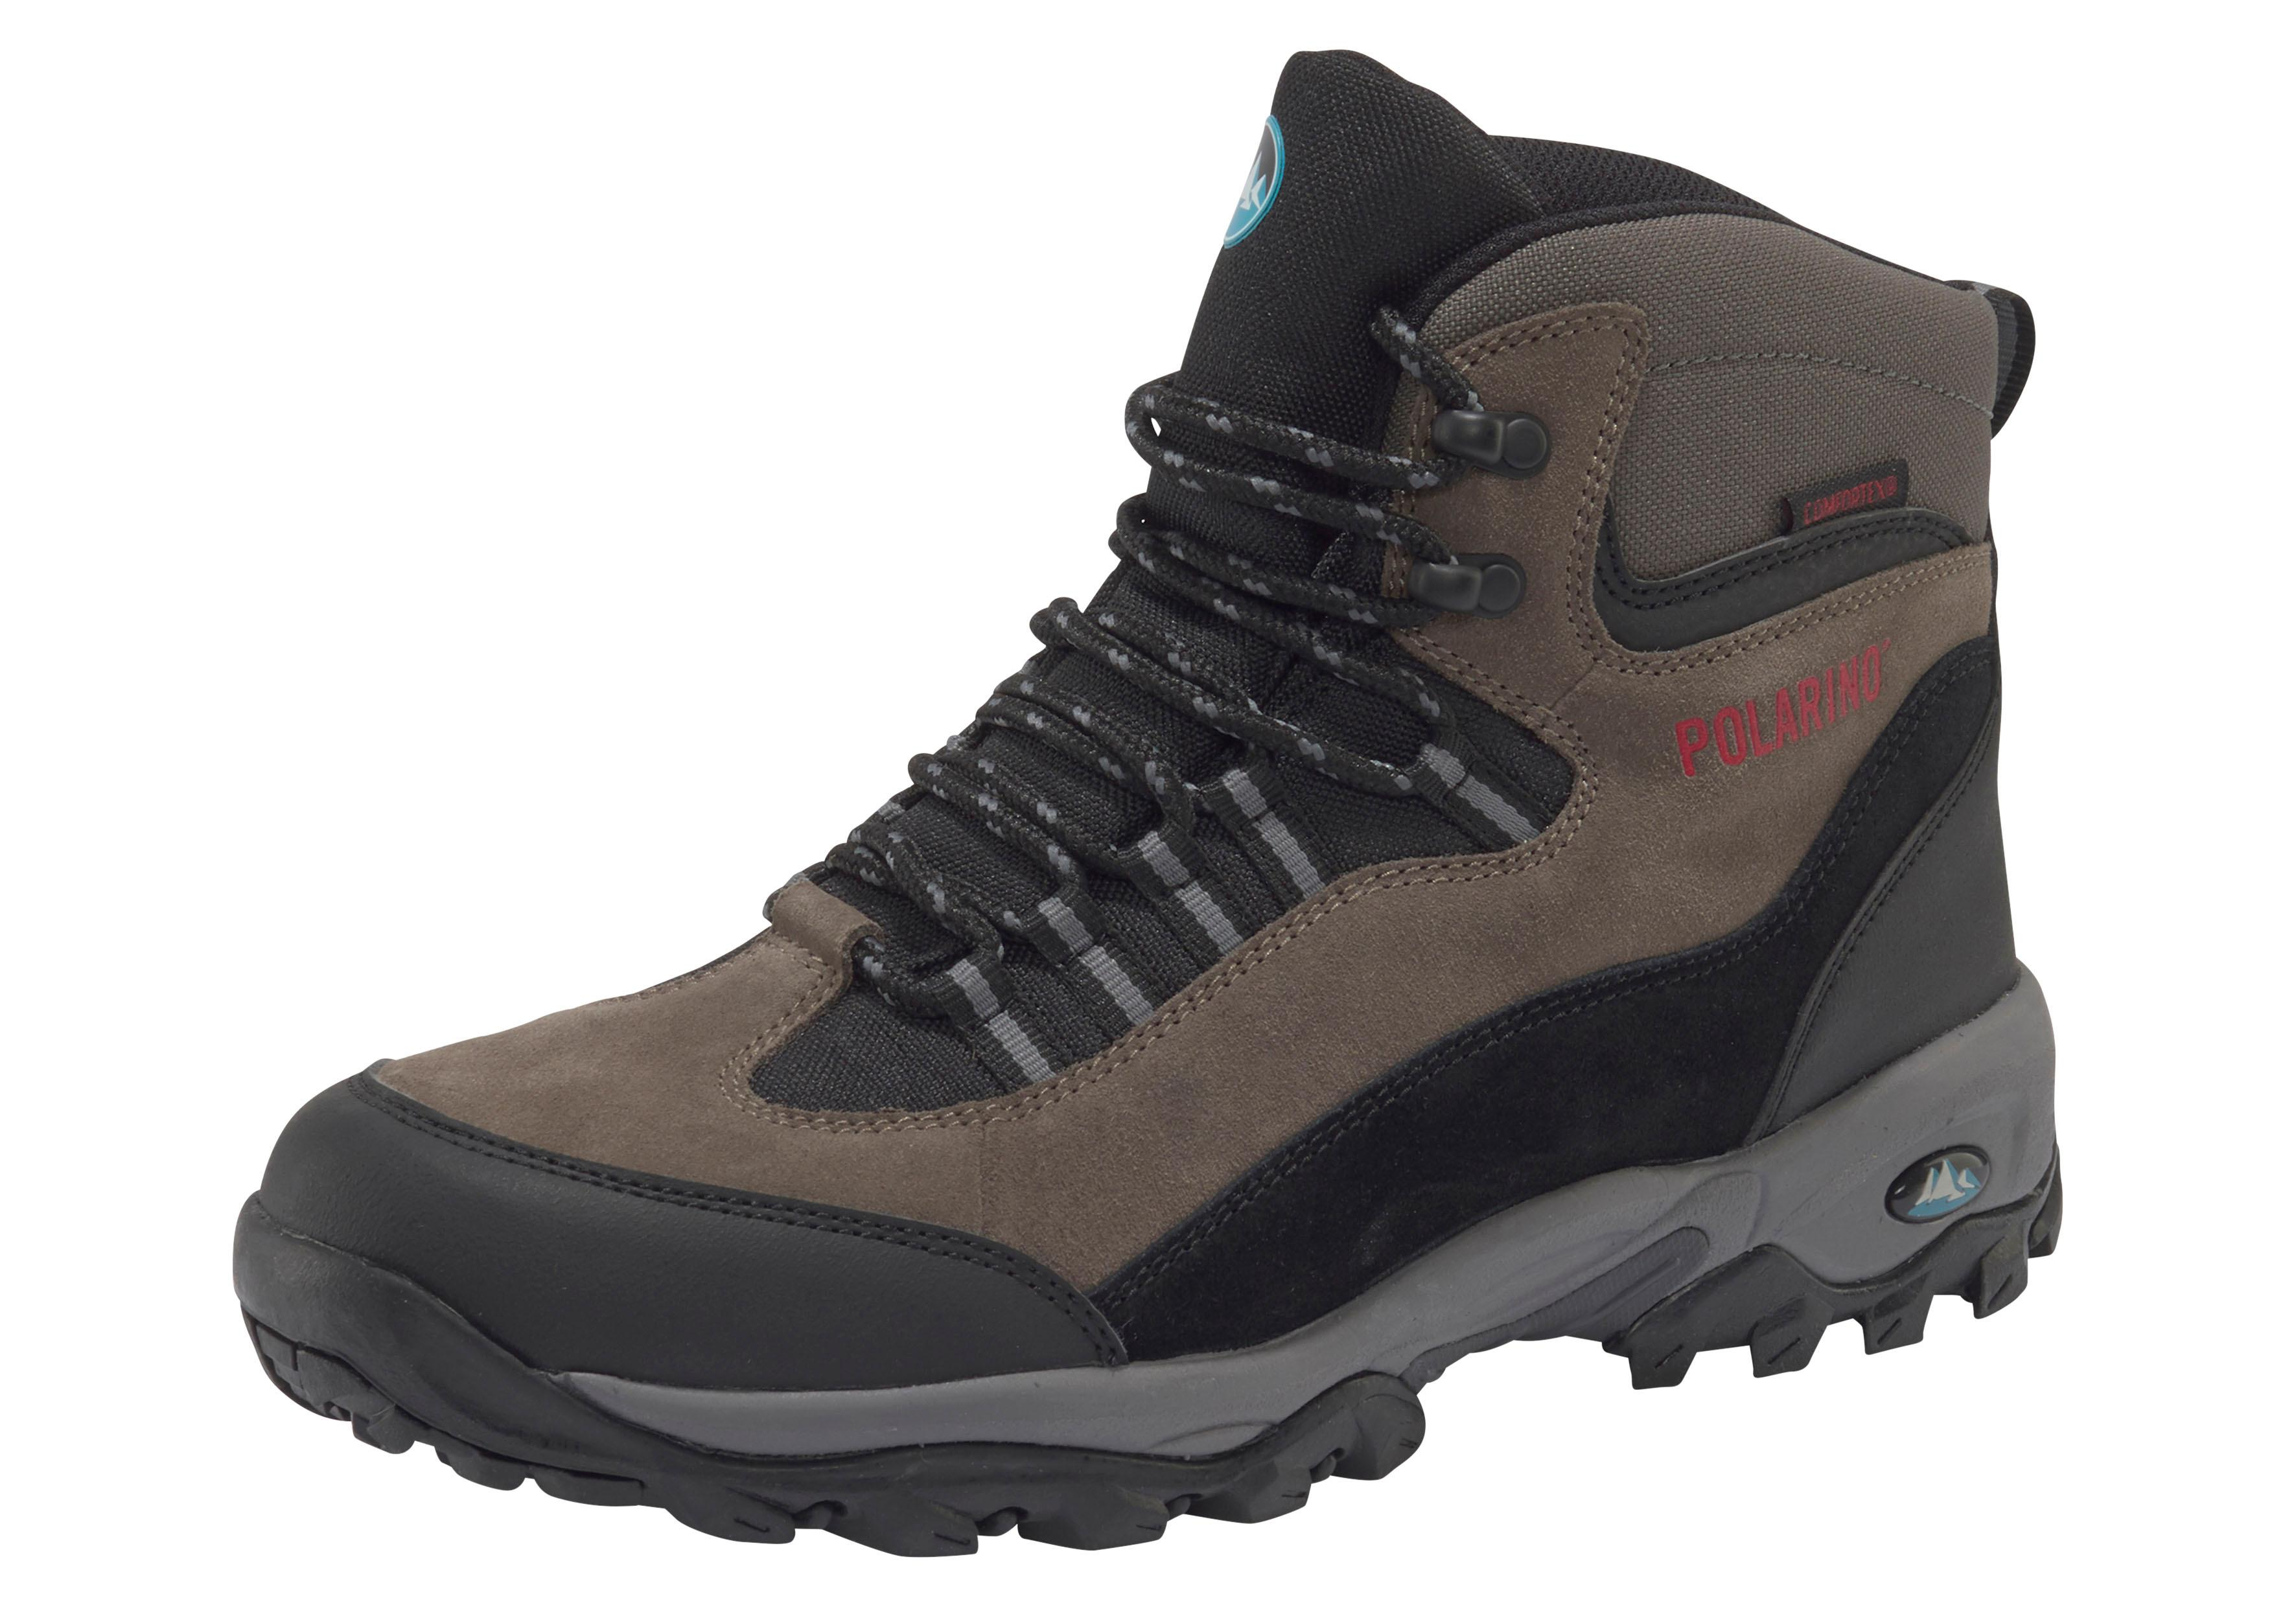 Polarino Outdoor-Schuhe Outdoorschuh TrekMount Technik & Freizeit Damen Outdoor-Schuhe Polarino Damen 379caa